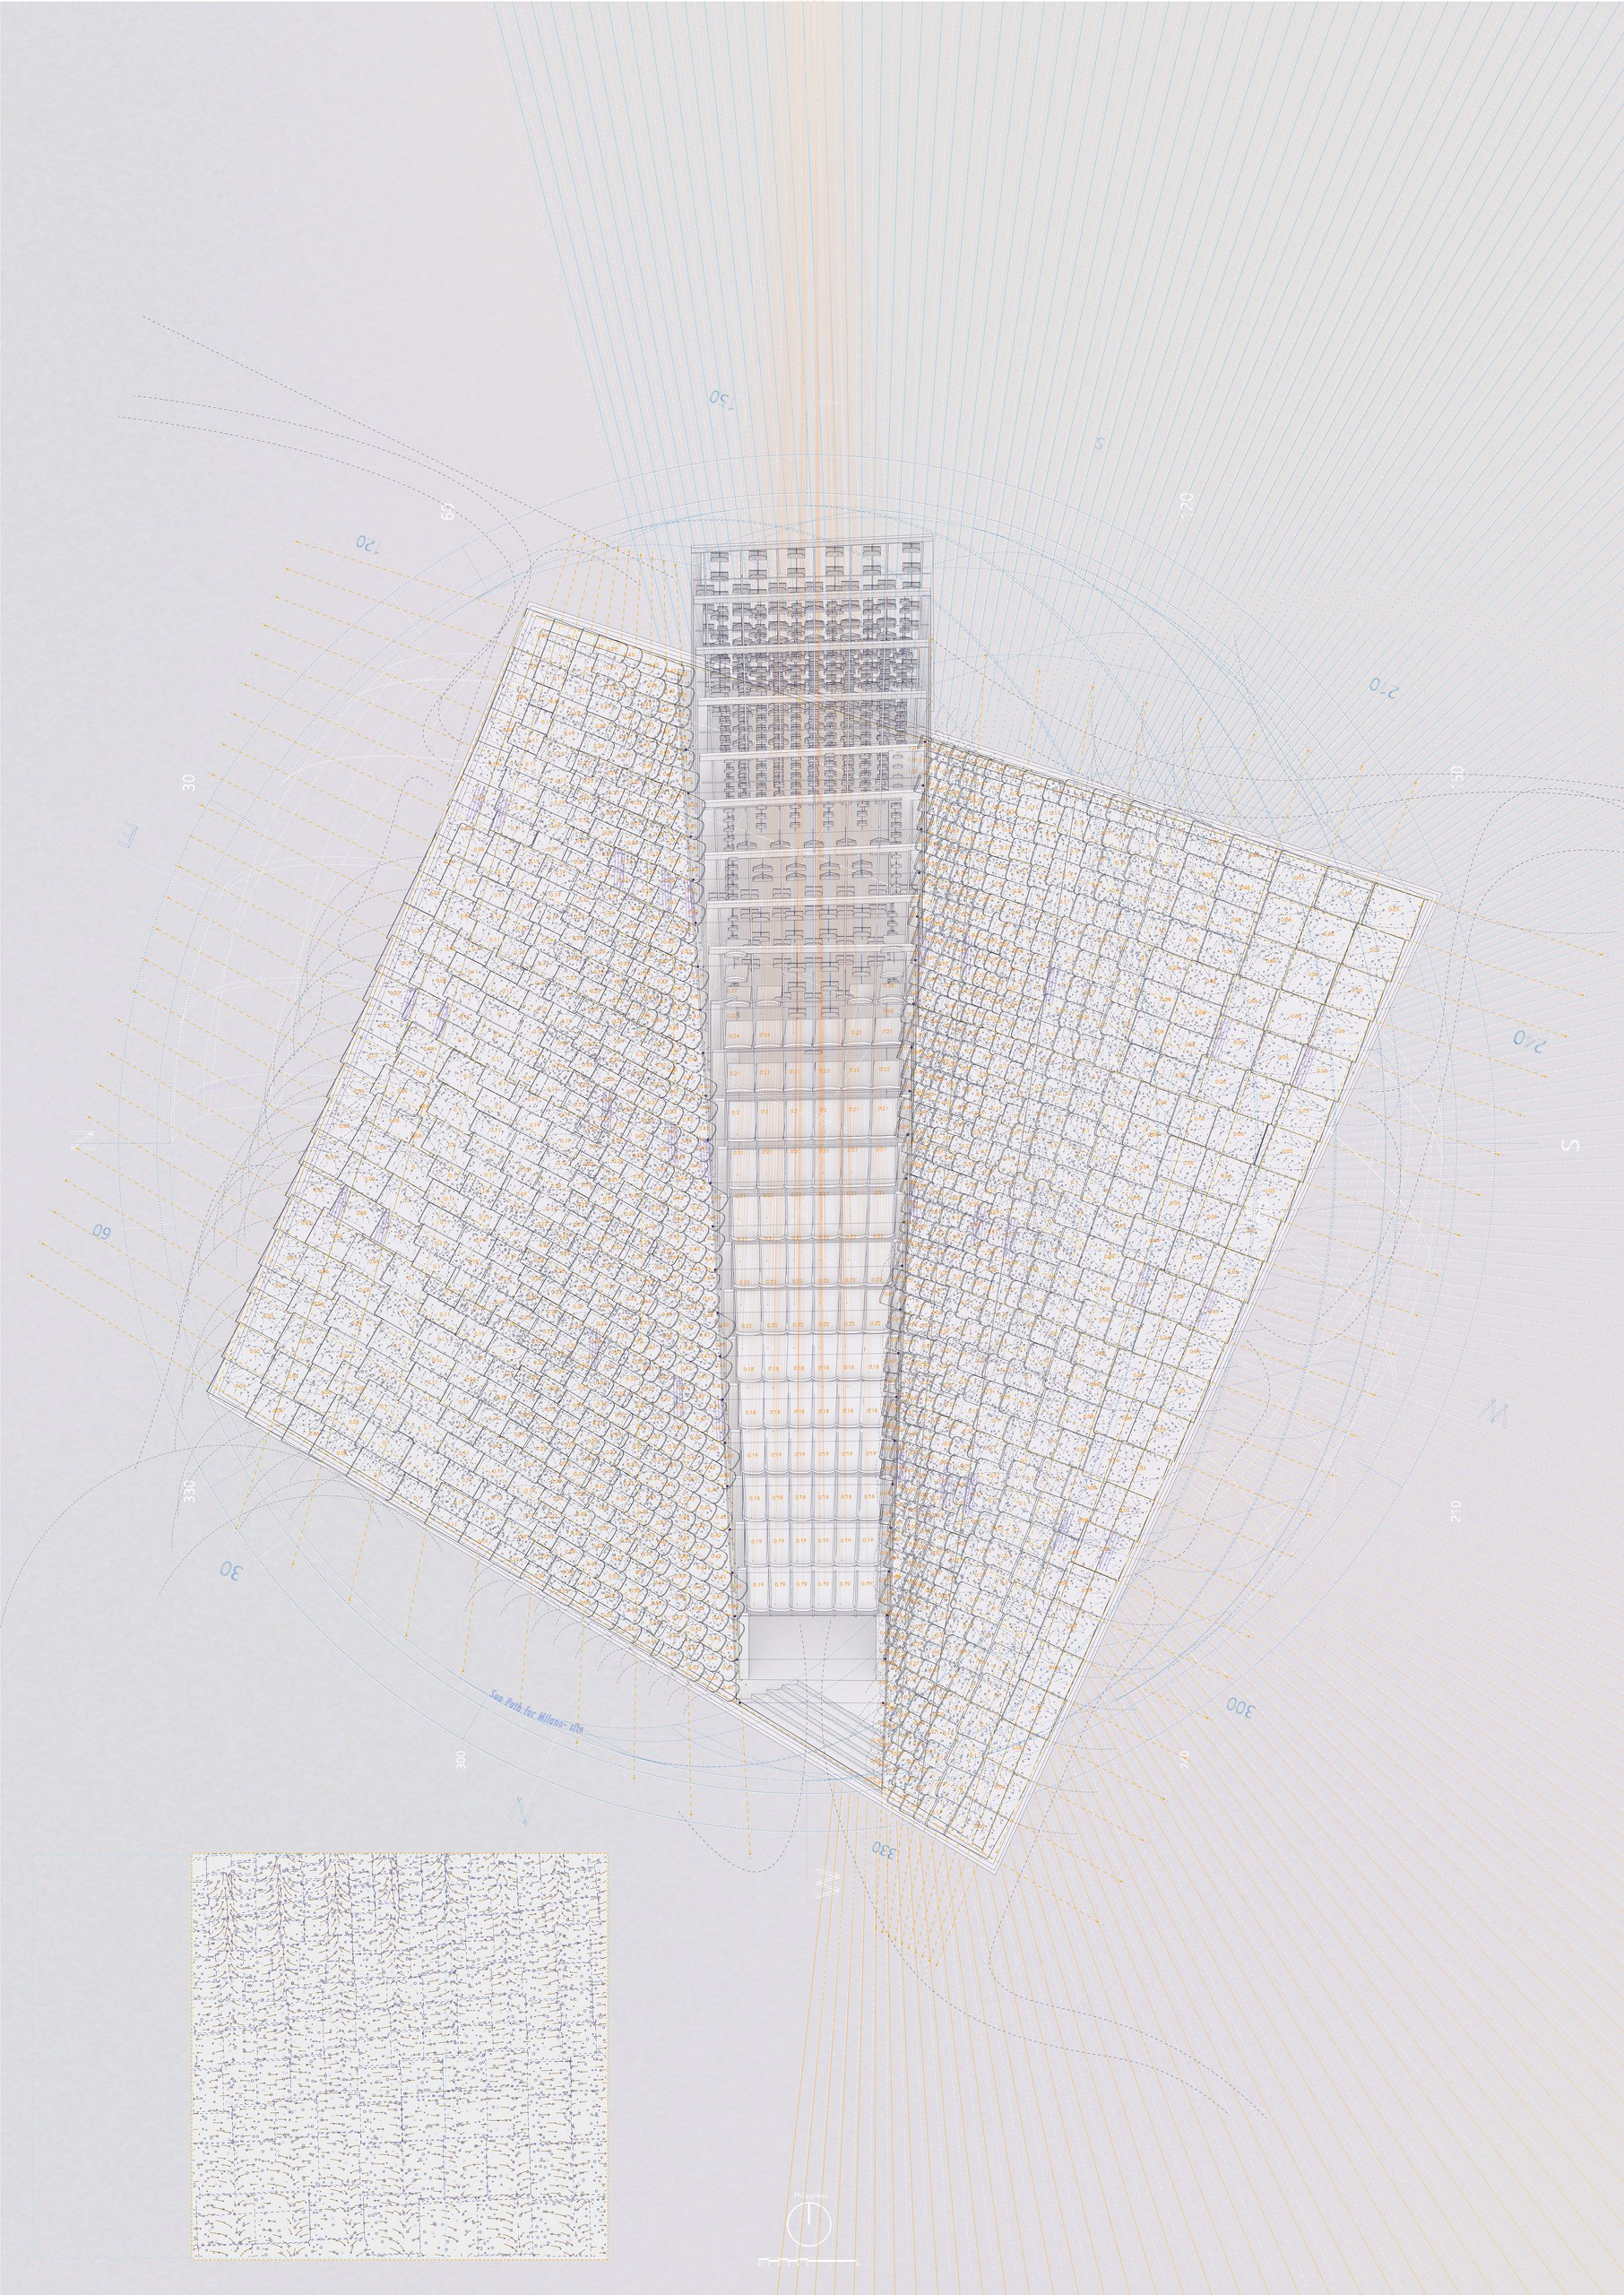 Roof axonometric and plan projection